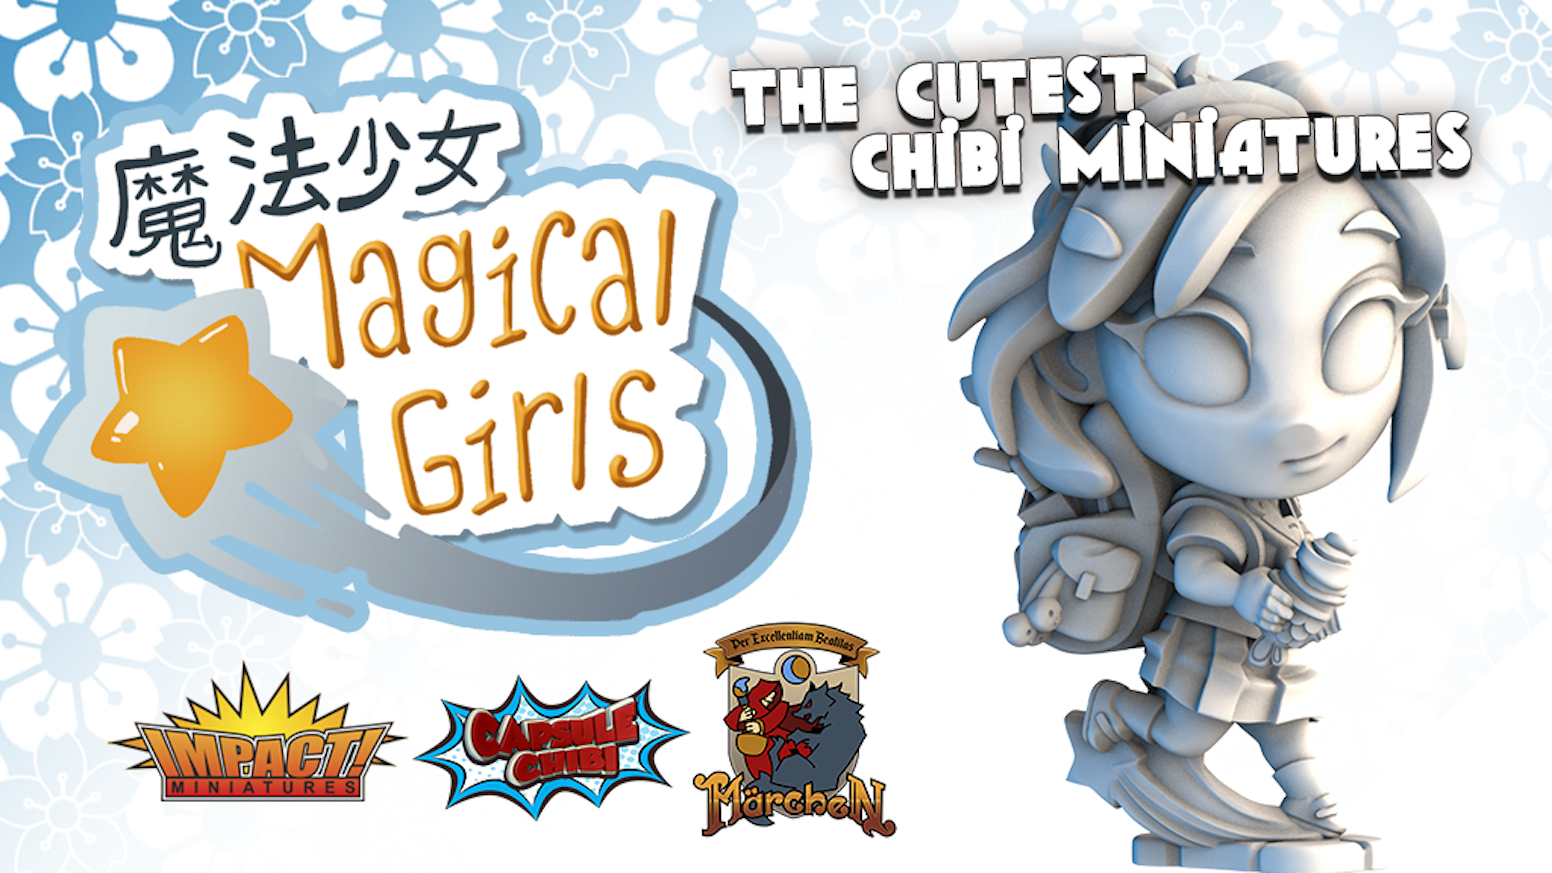 Fun new chibi fantasy miniatures for gaming or painting and display.